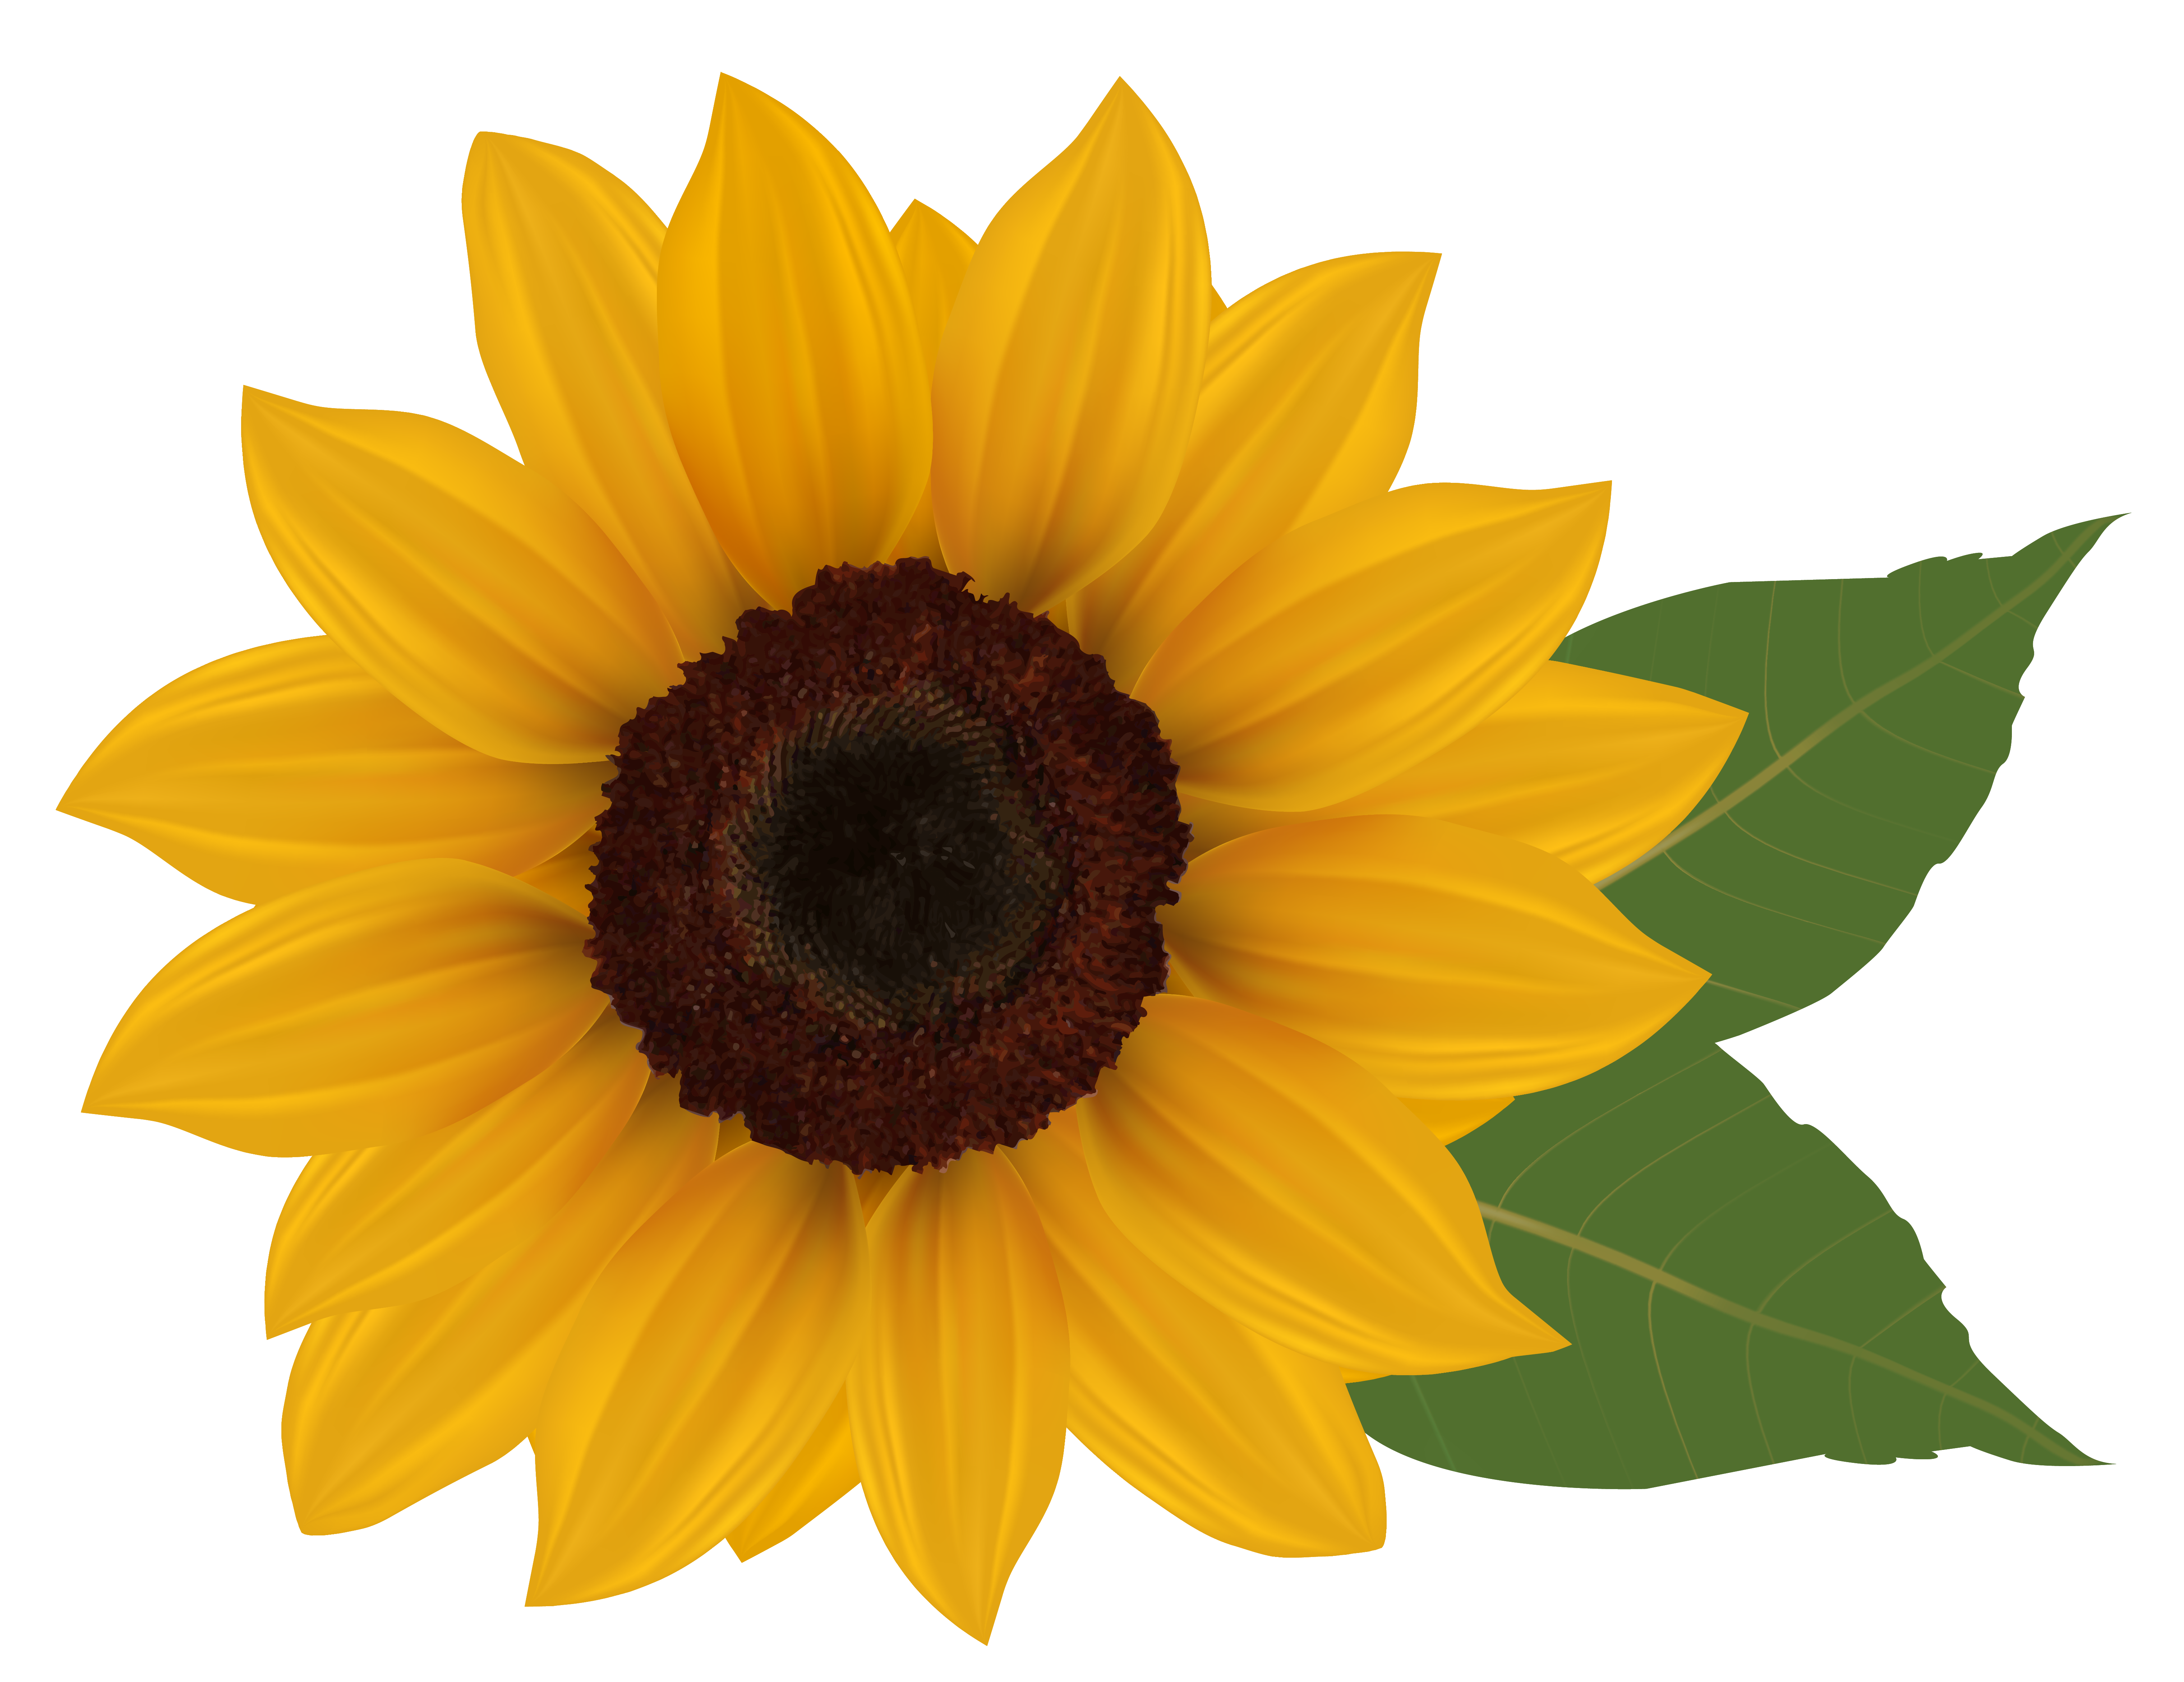 Fall Sunflower Png - Sunflower PNG Clipart Picture | Gallery Yopriceville - High ...